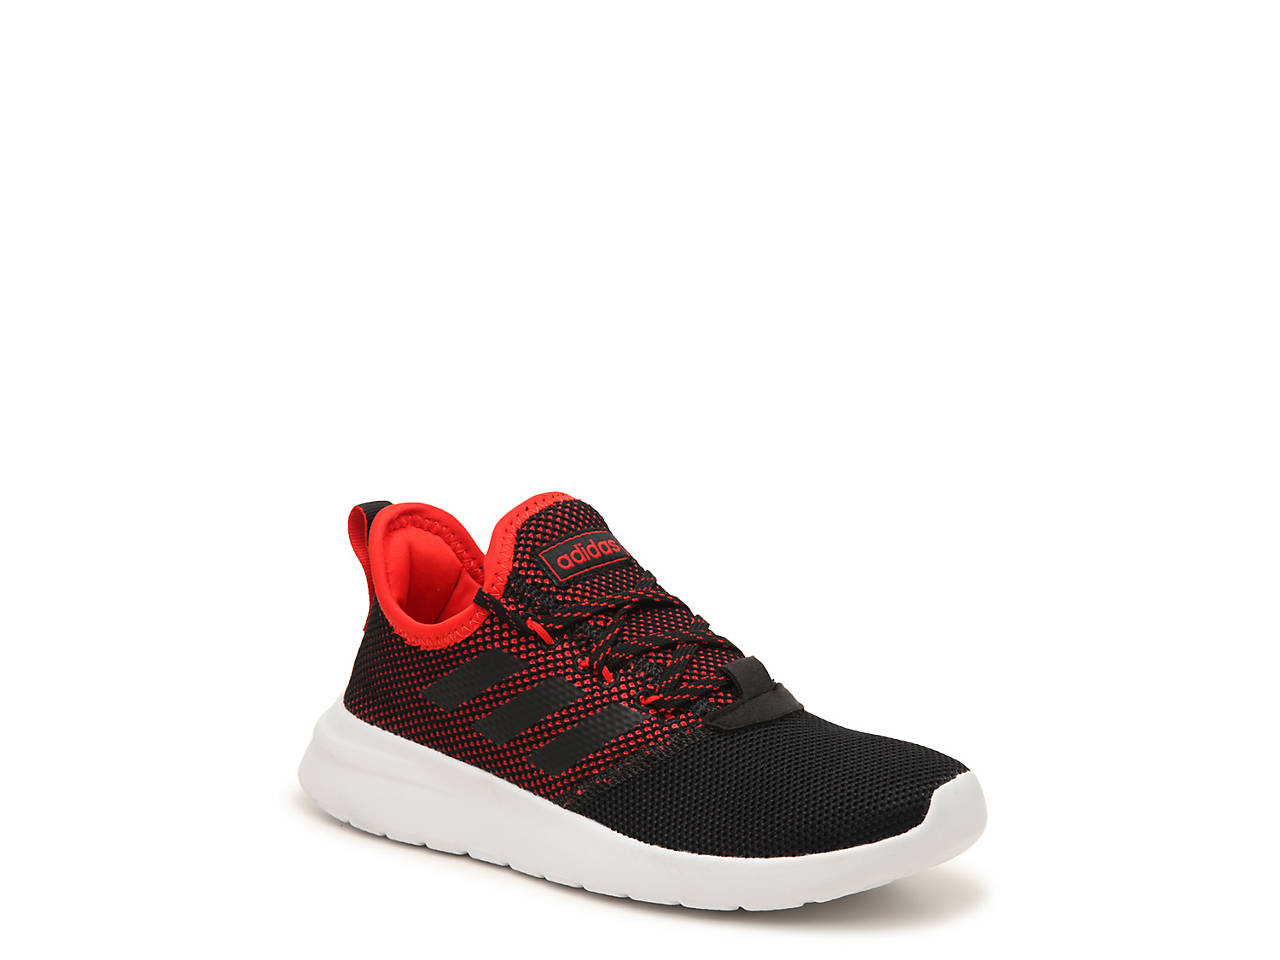 best service 9ca13 ed134 adidas Lite Racer RBN Toddler   Youth Sneaker Kids Shoes   DSW